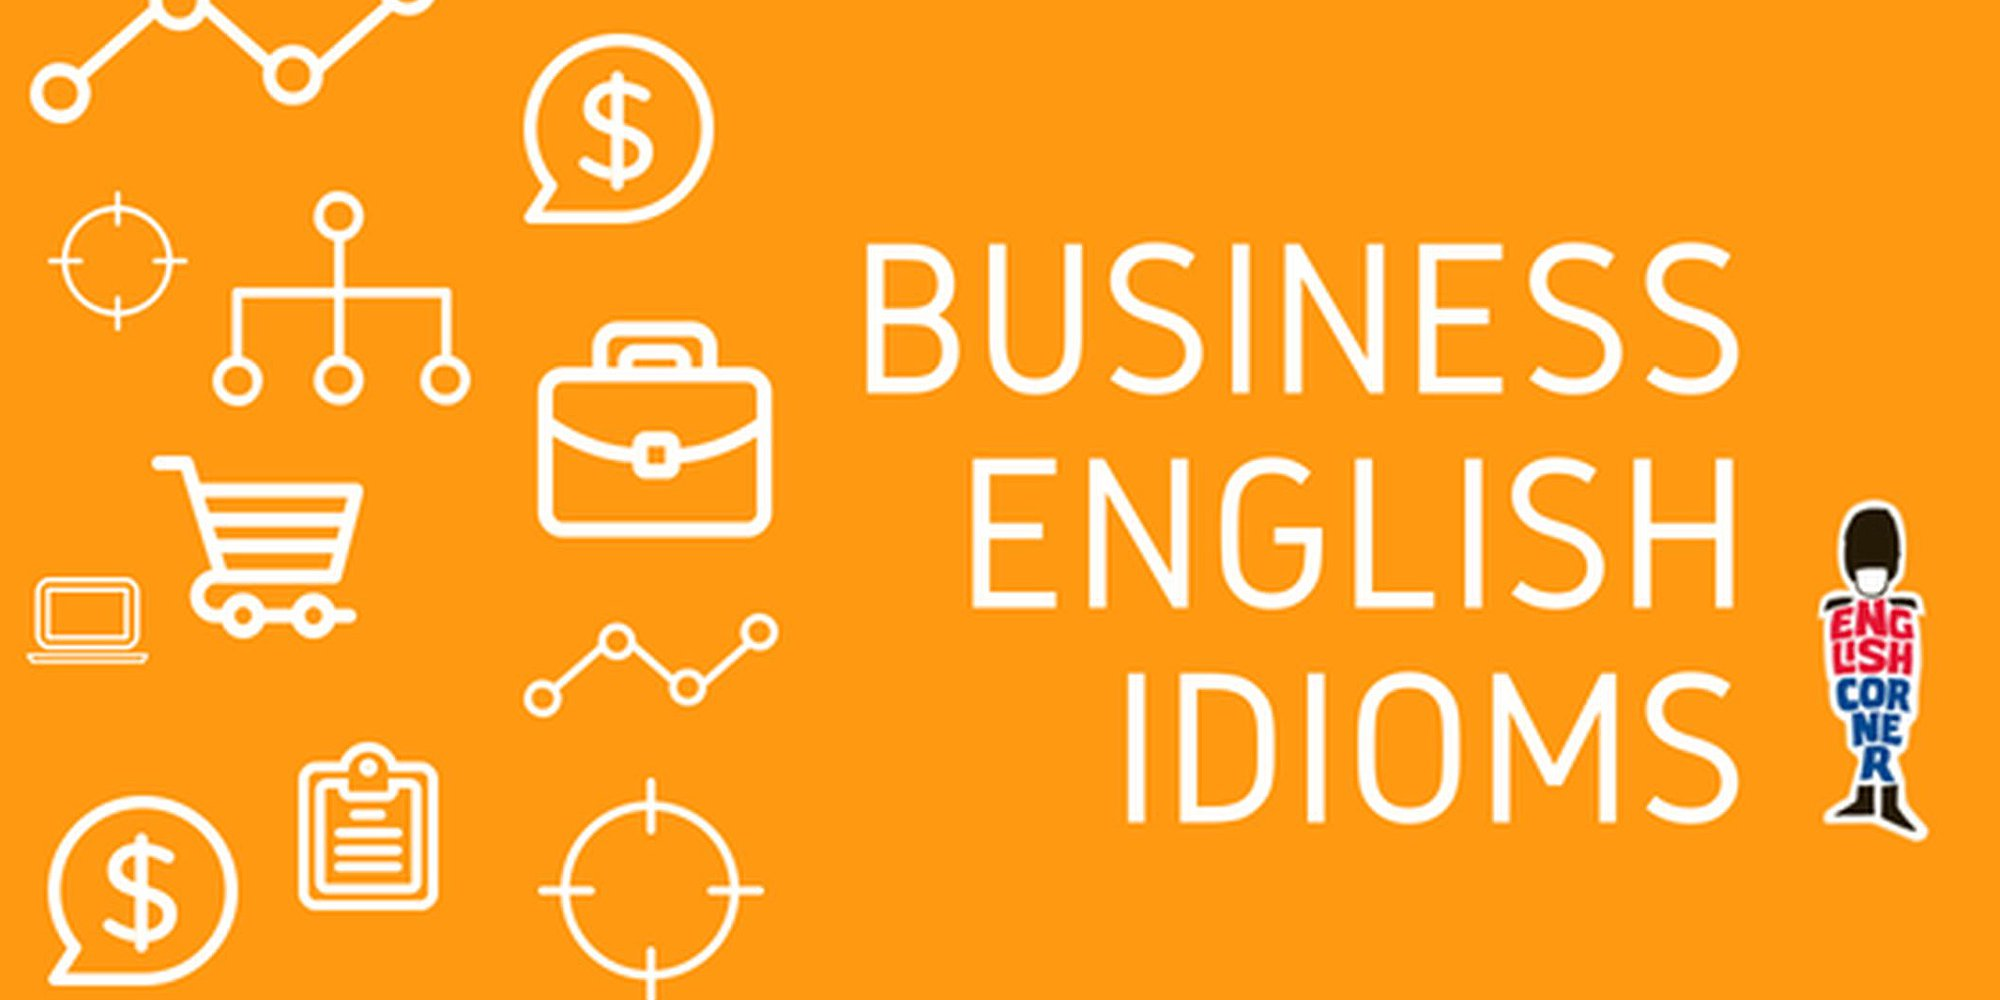 BOOST YOUR BUSINESS ENGLISH!